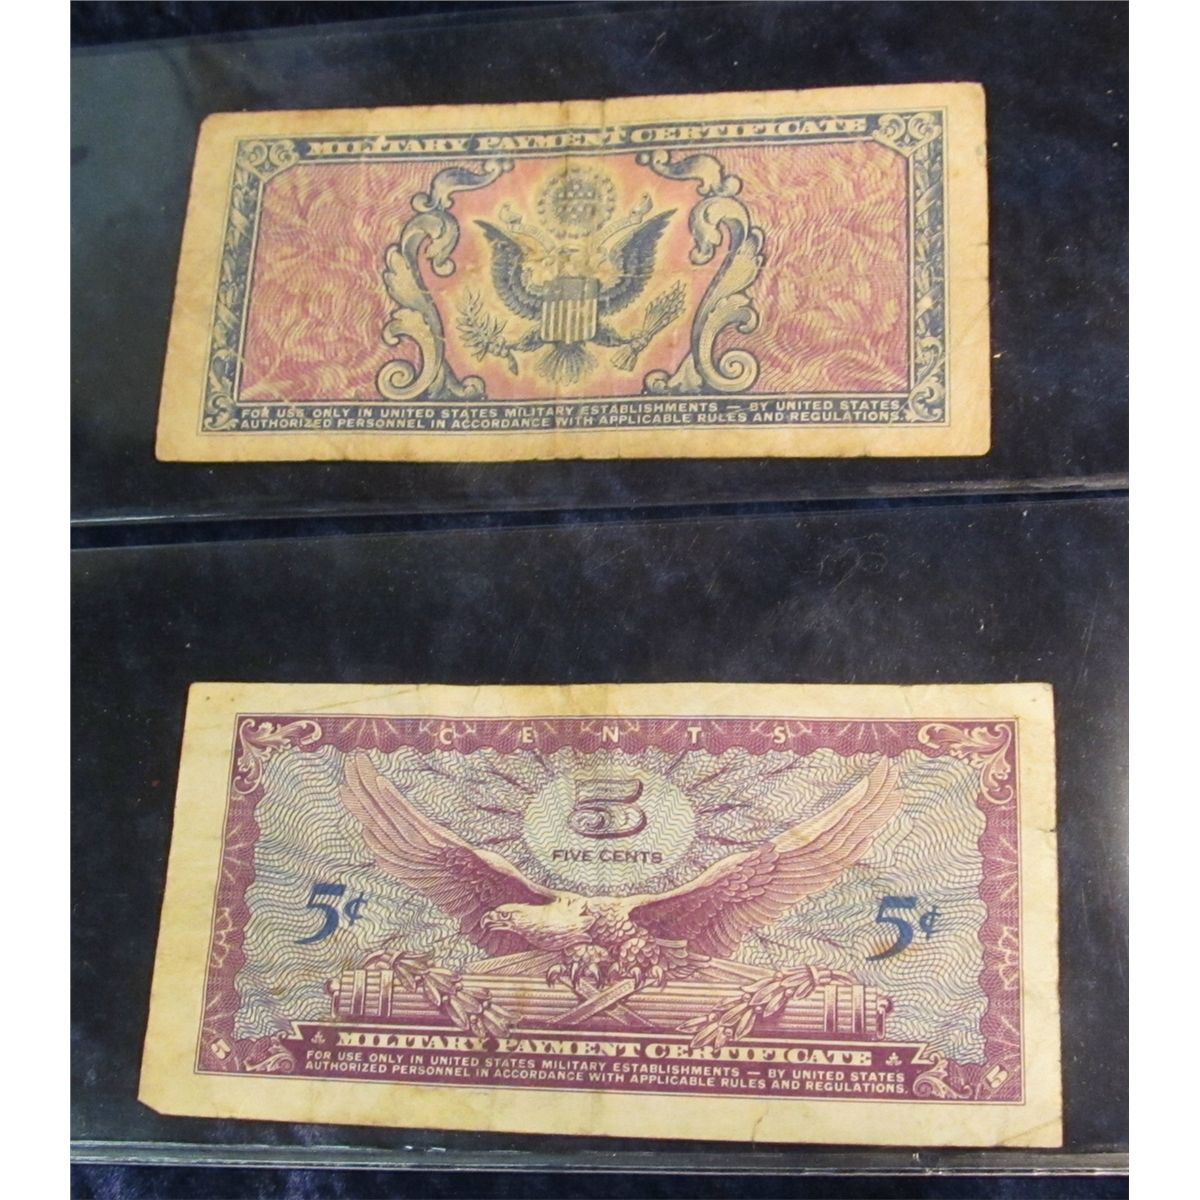 1035 2 Us Military Payment Certificates Mpcs Series 481 5 Cents